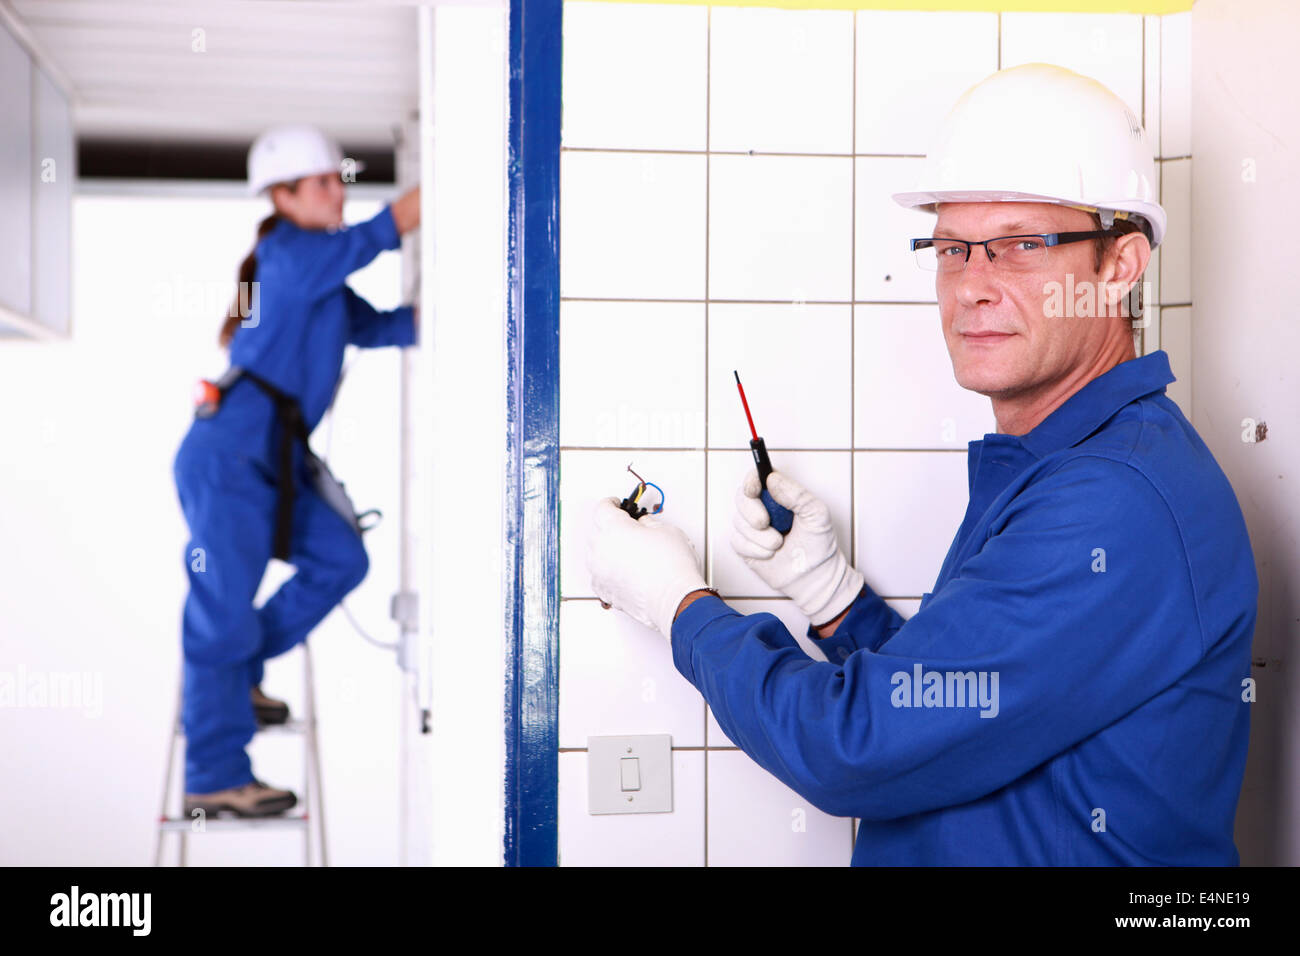 Electricians Wiring Bathroom Stock Photos House A Image